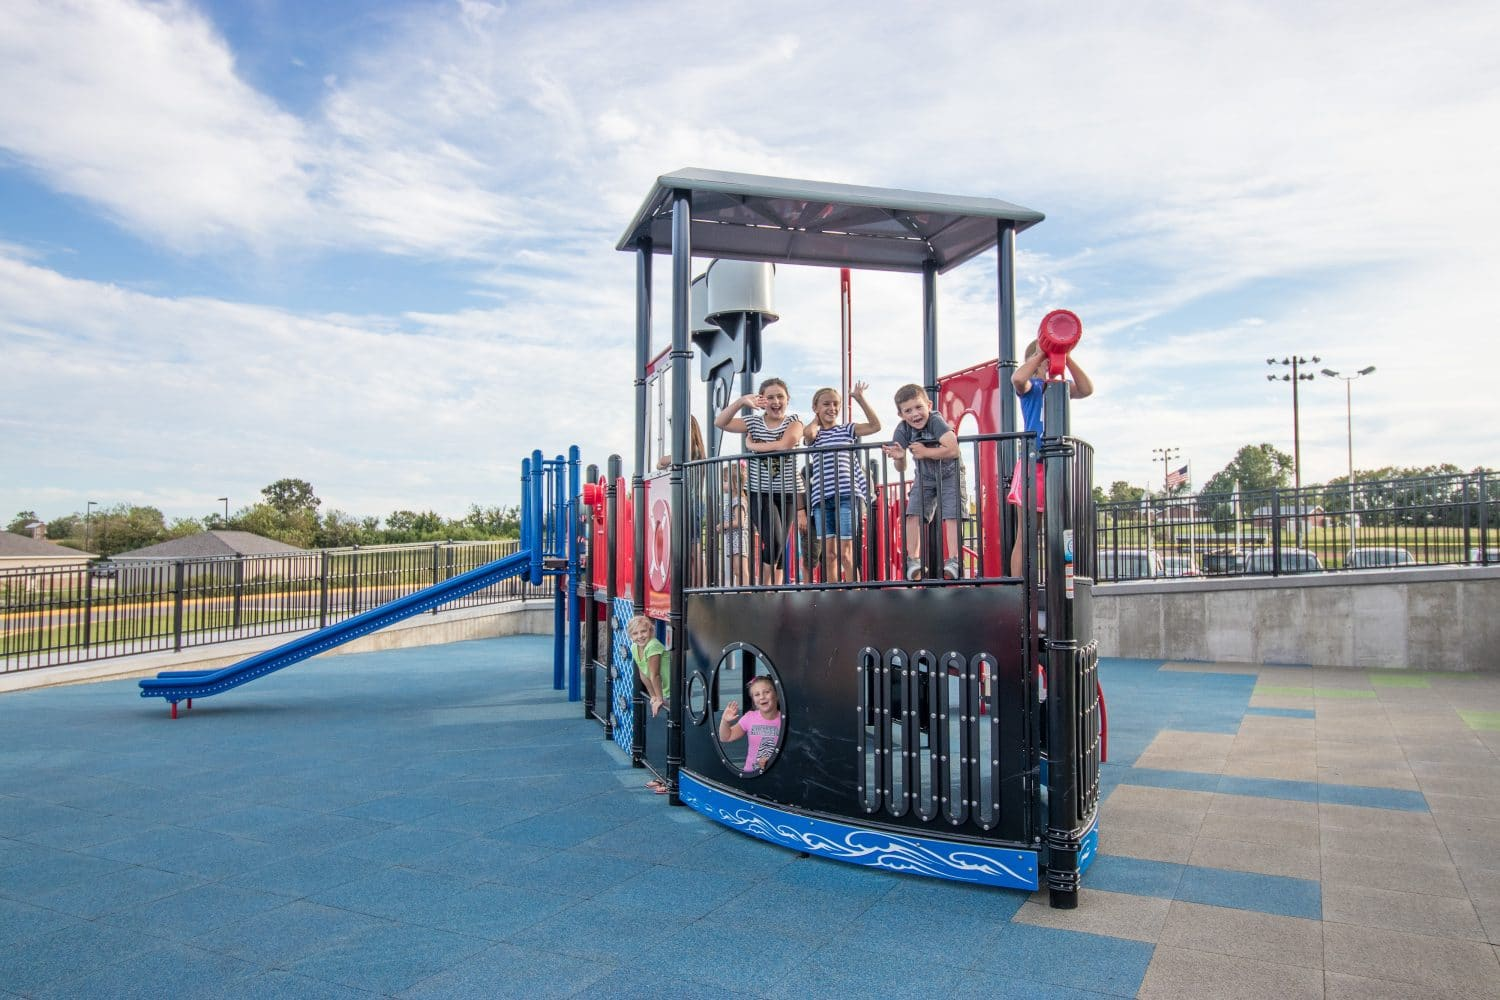 Children playing on a playground that looks like a riverboat.